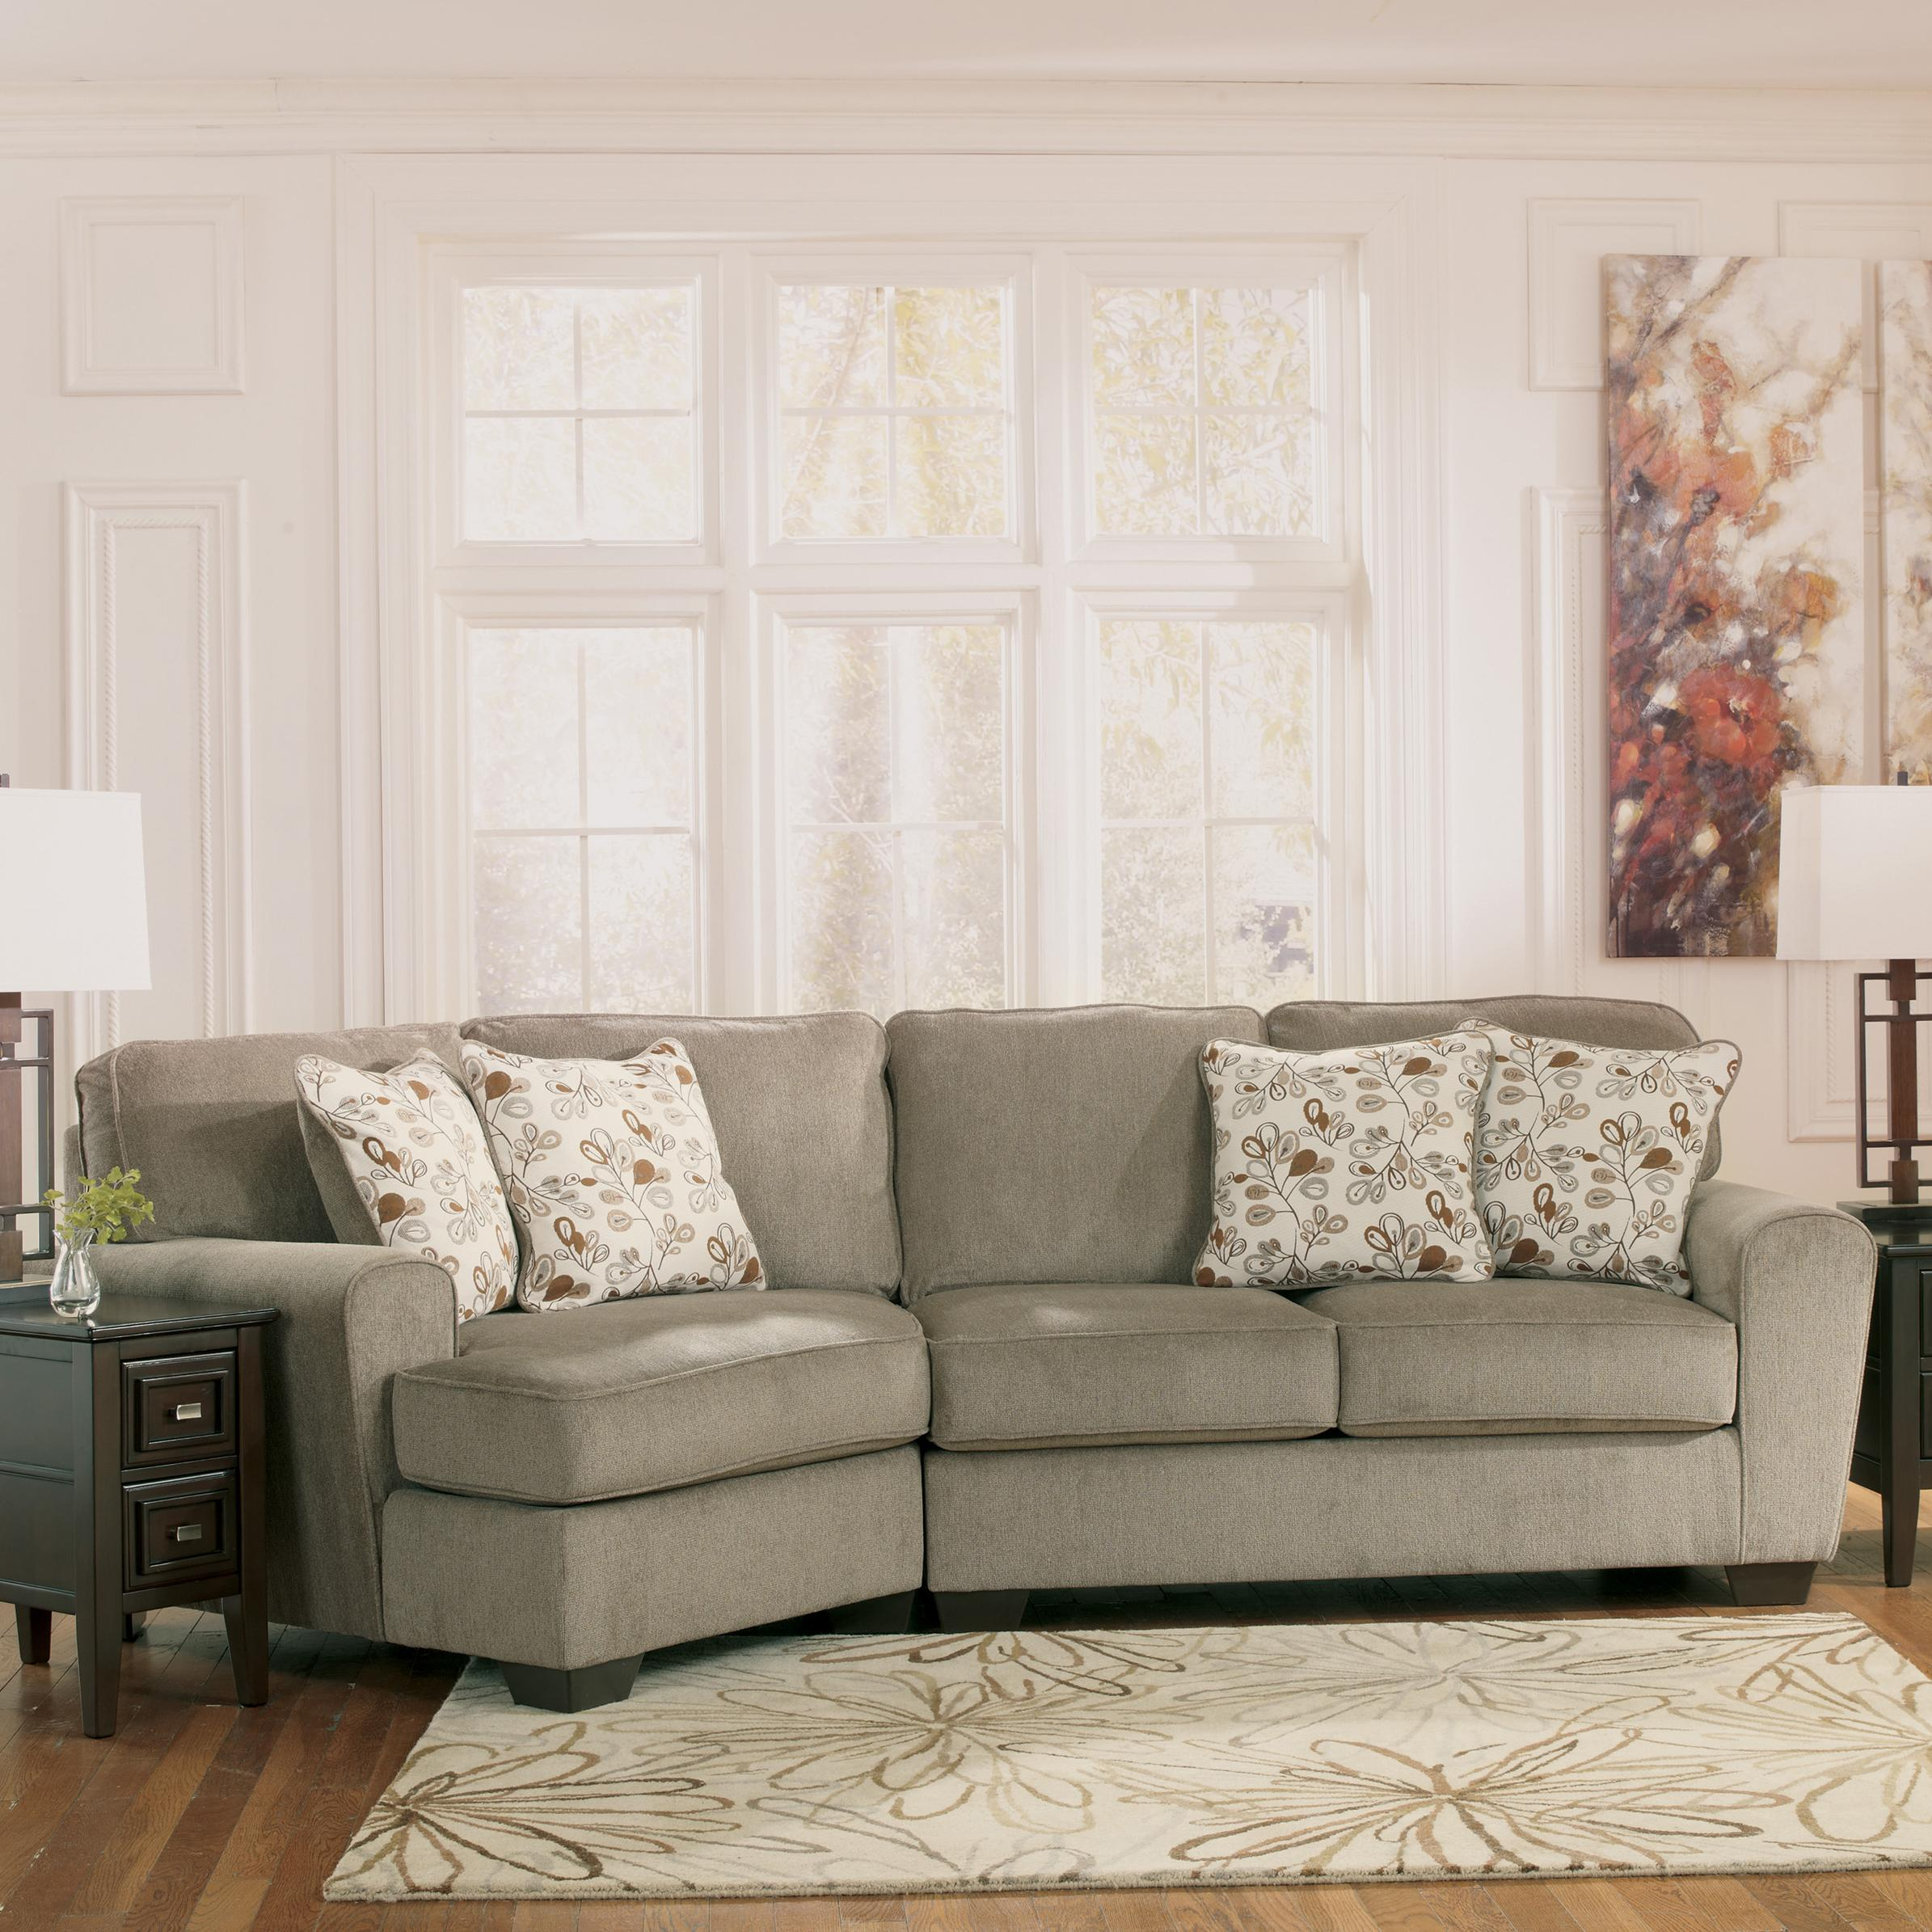 Patola Park - Patina 2-Piece Sectional with Left Cuddler by Ashley Furniture at Lapeer Furniture & Mattress Center